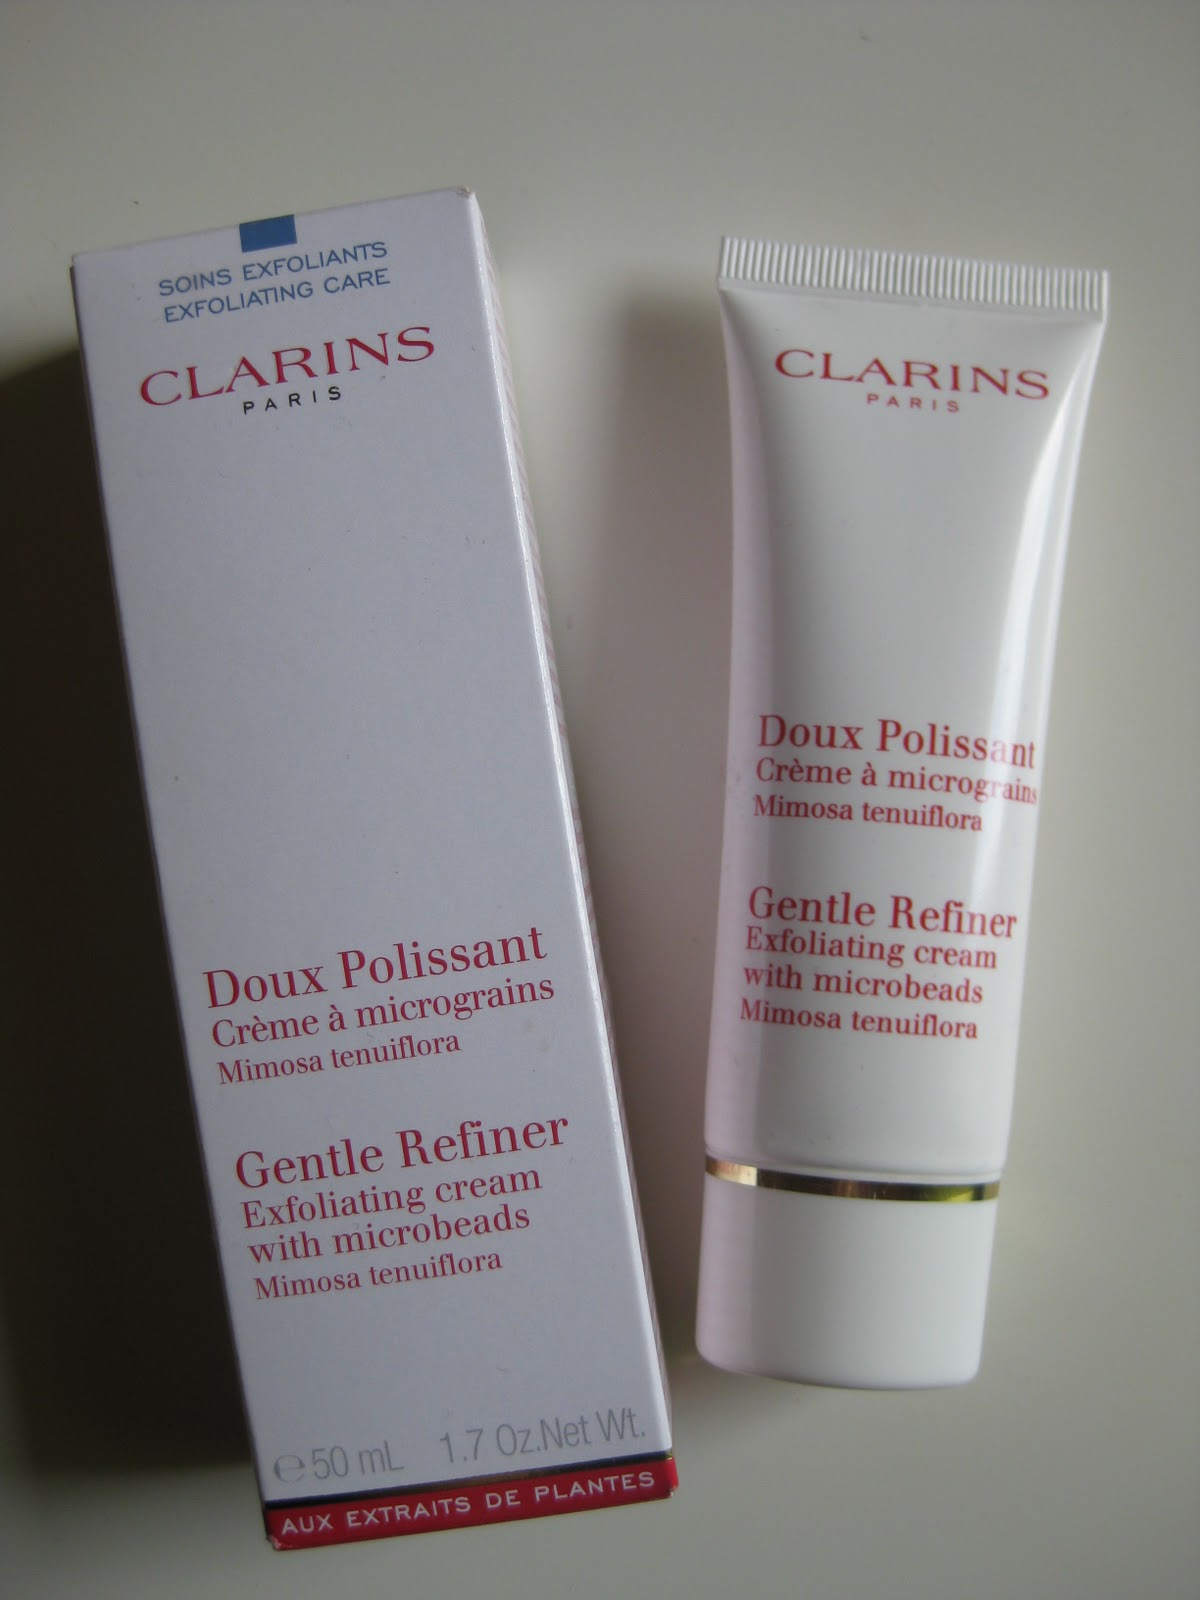 how to use clarins gentle exfoliating refiner